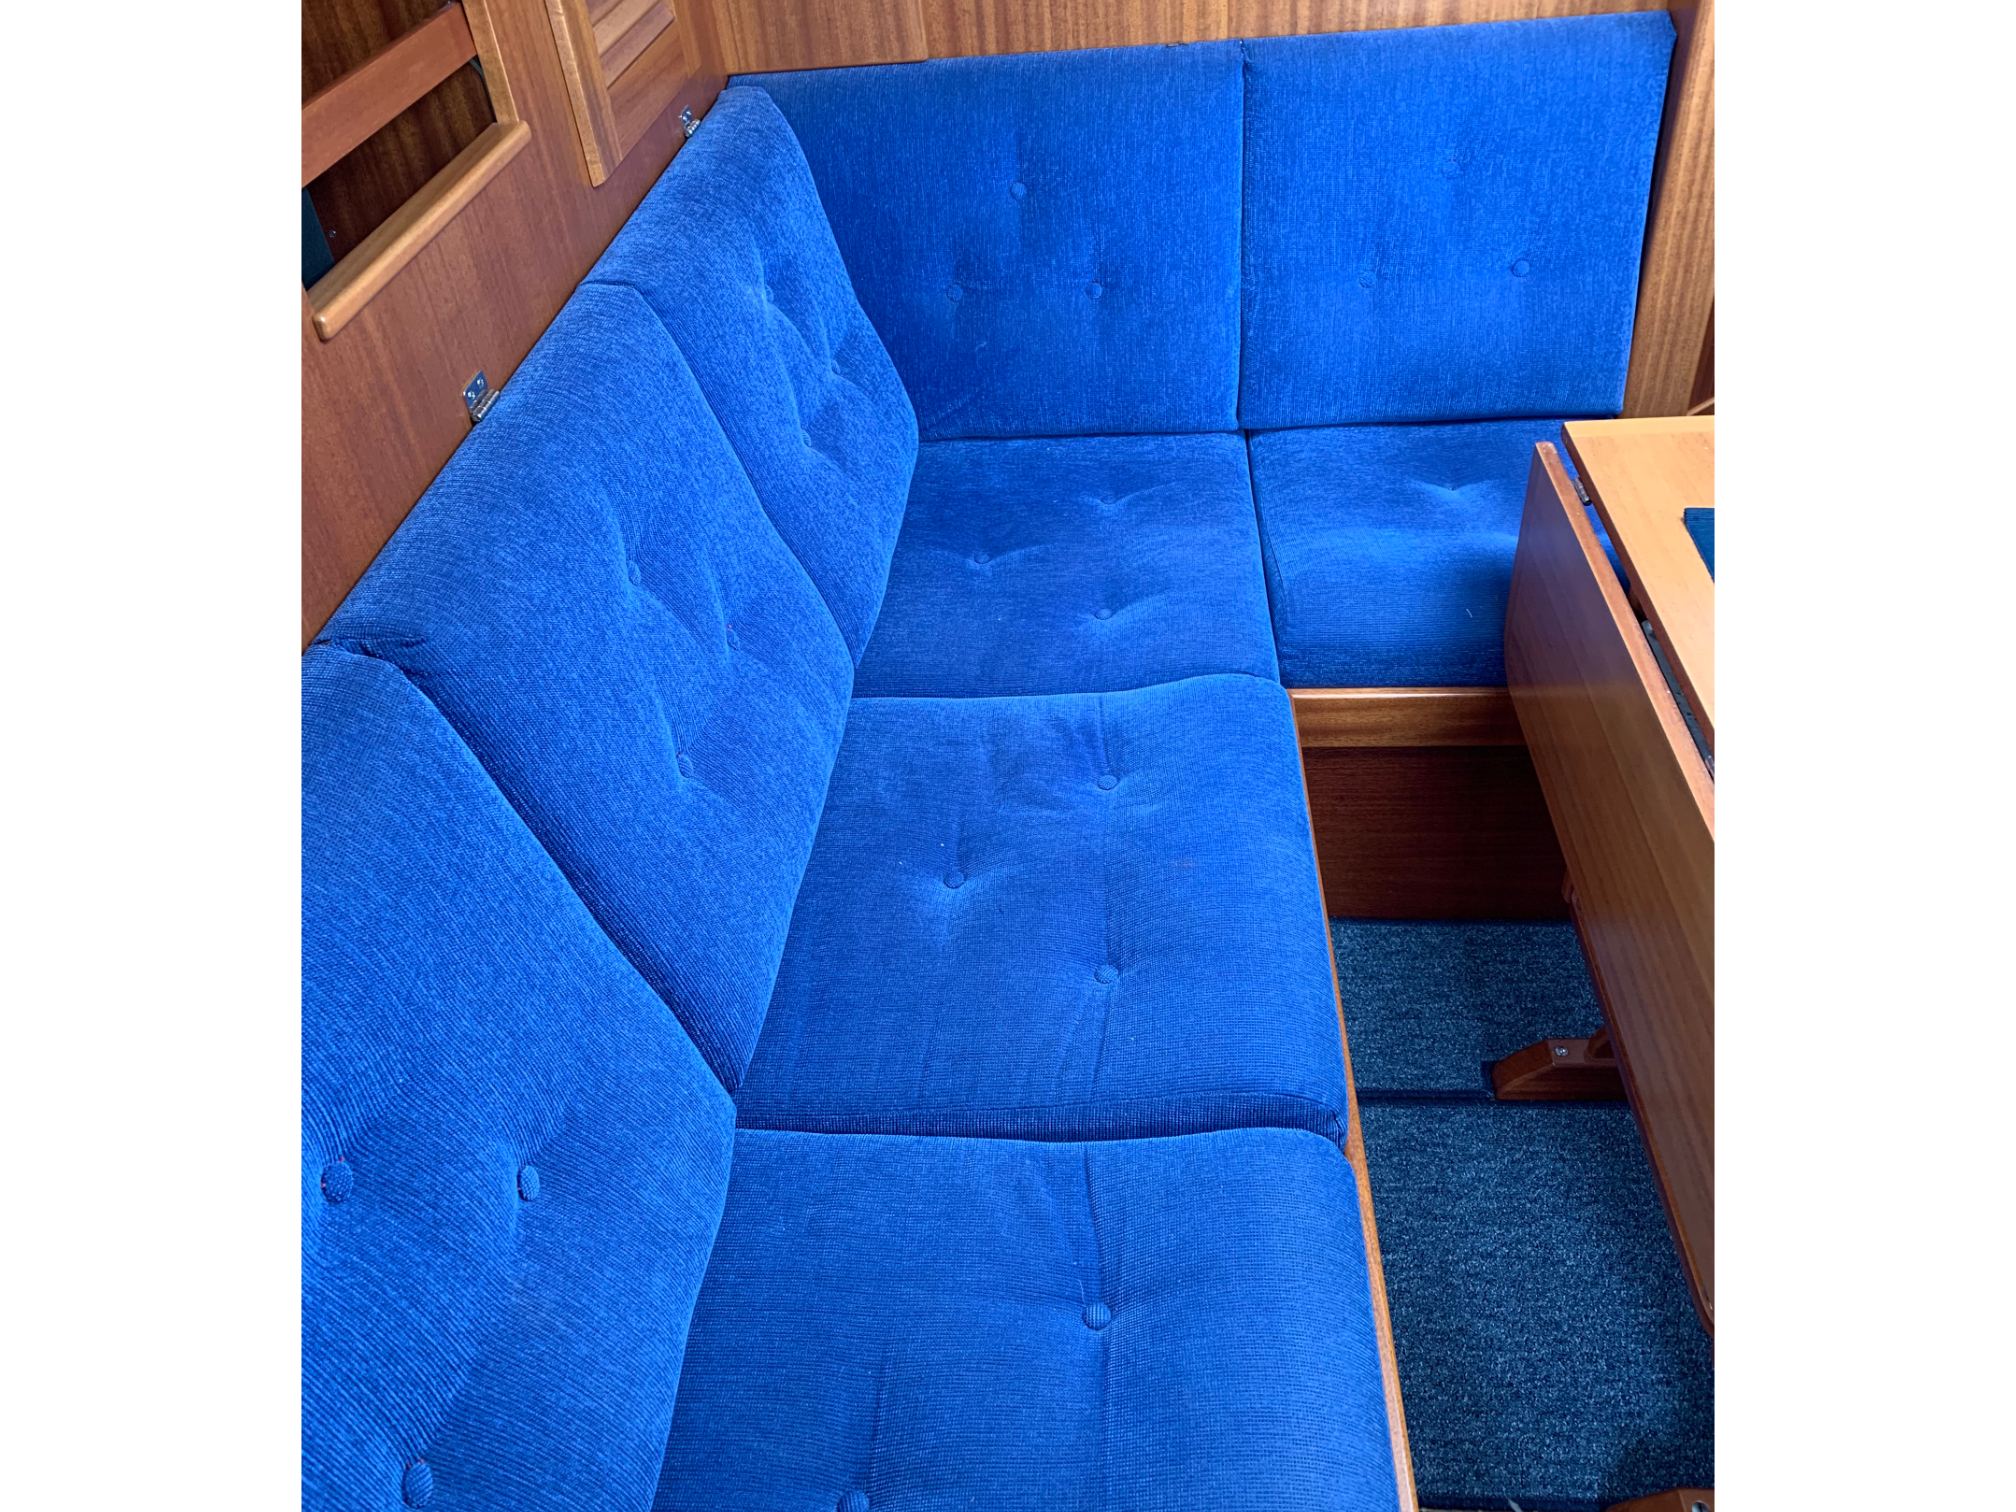 Marine Bedding Boat Upholstery - Blue Saloon Boat Upholstery